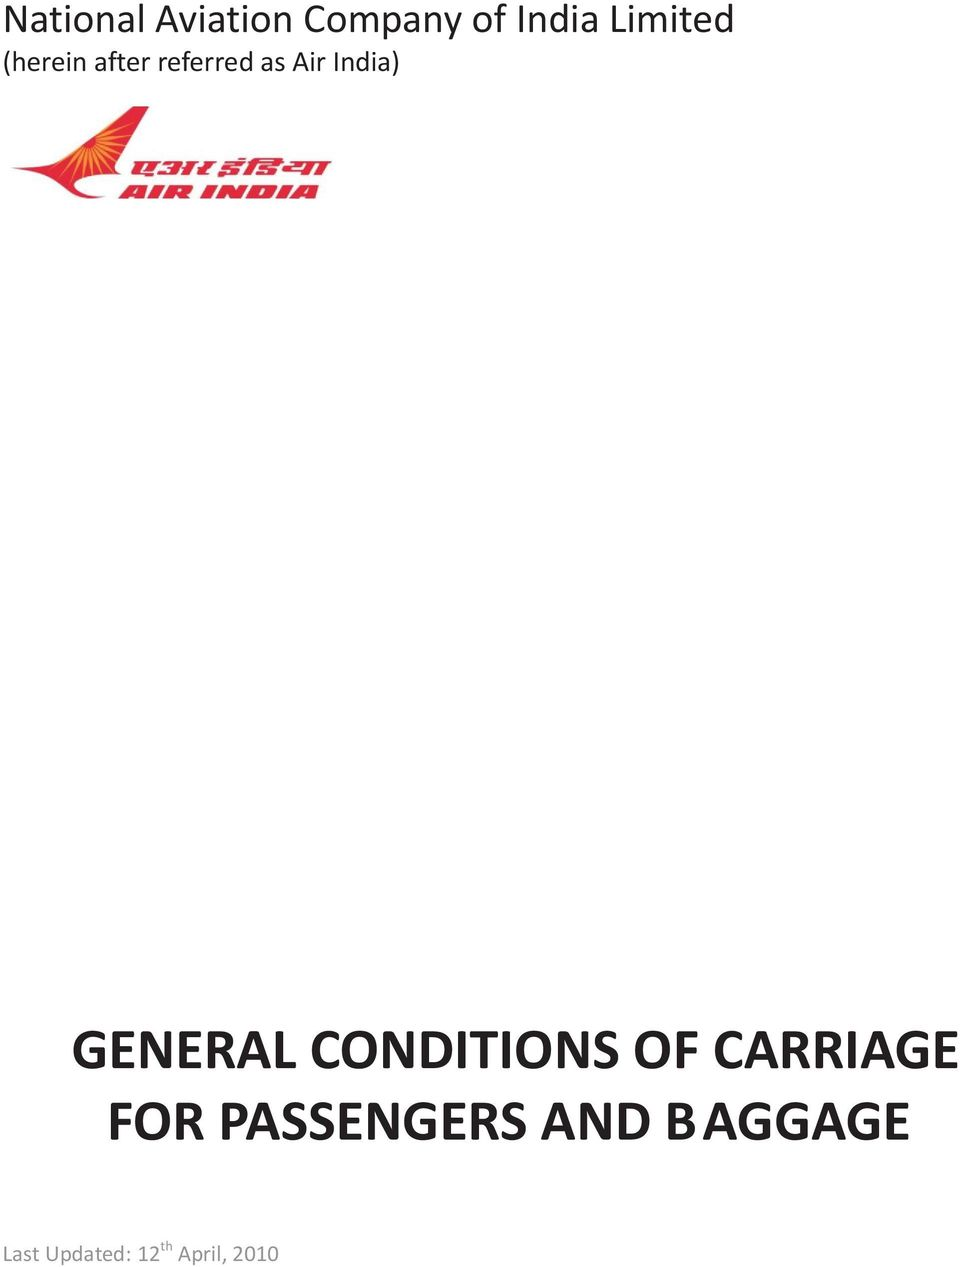 GENERAL CONDITIONS OF CARRIAGE FOR